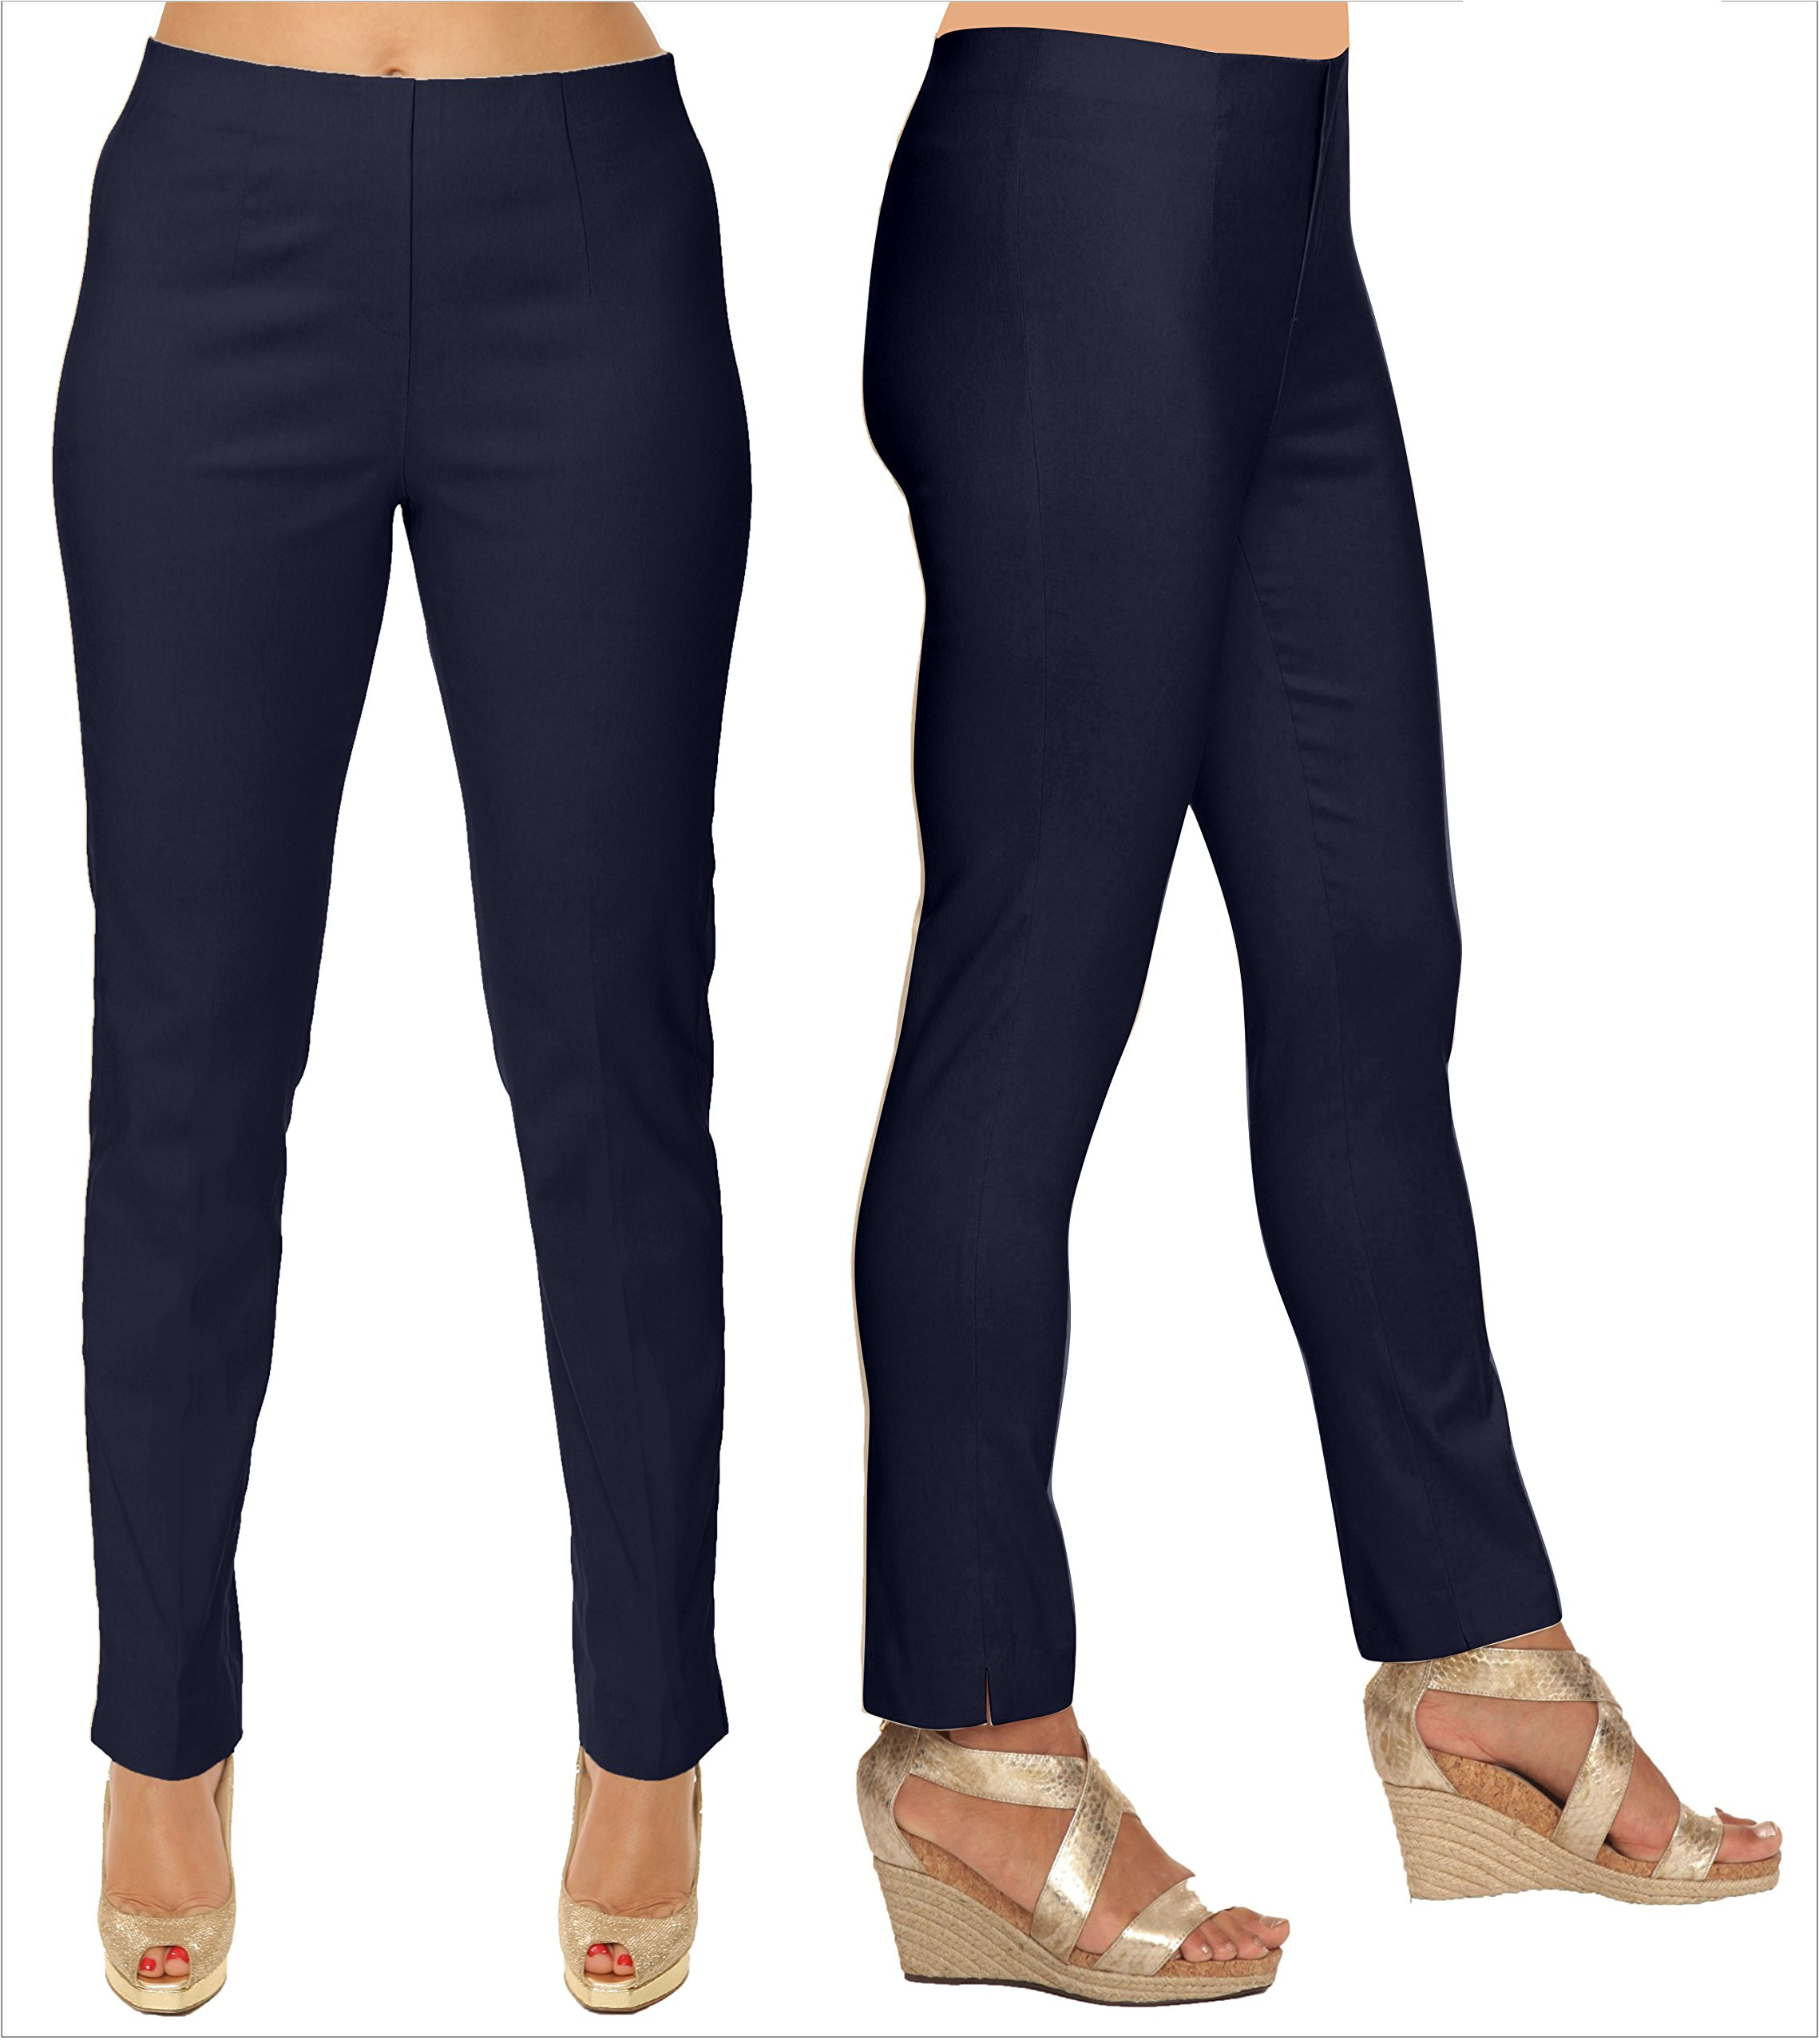 Lior Paris Sasha Essential Slim Fit Ankle Pant (8, Navy) by Lior paris